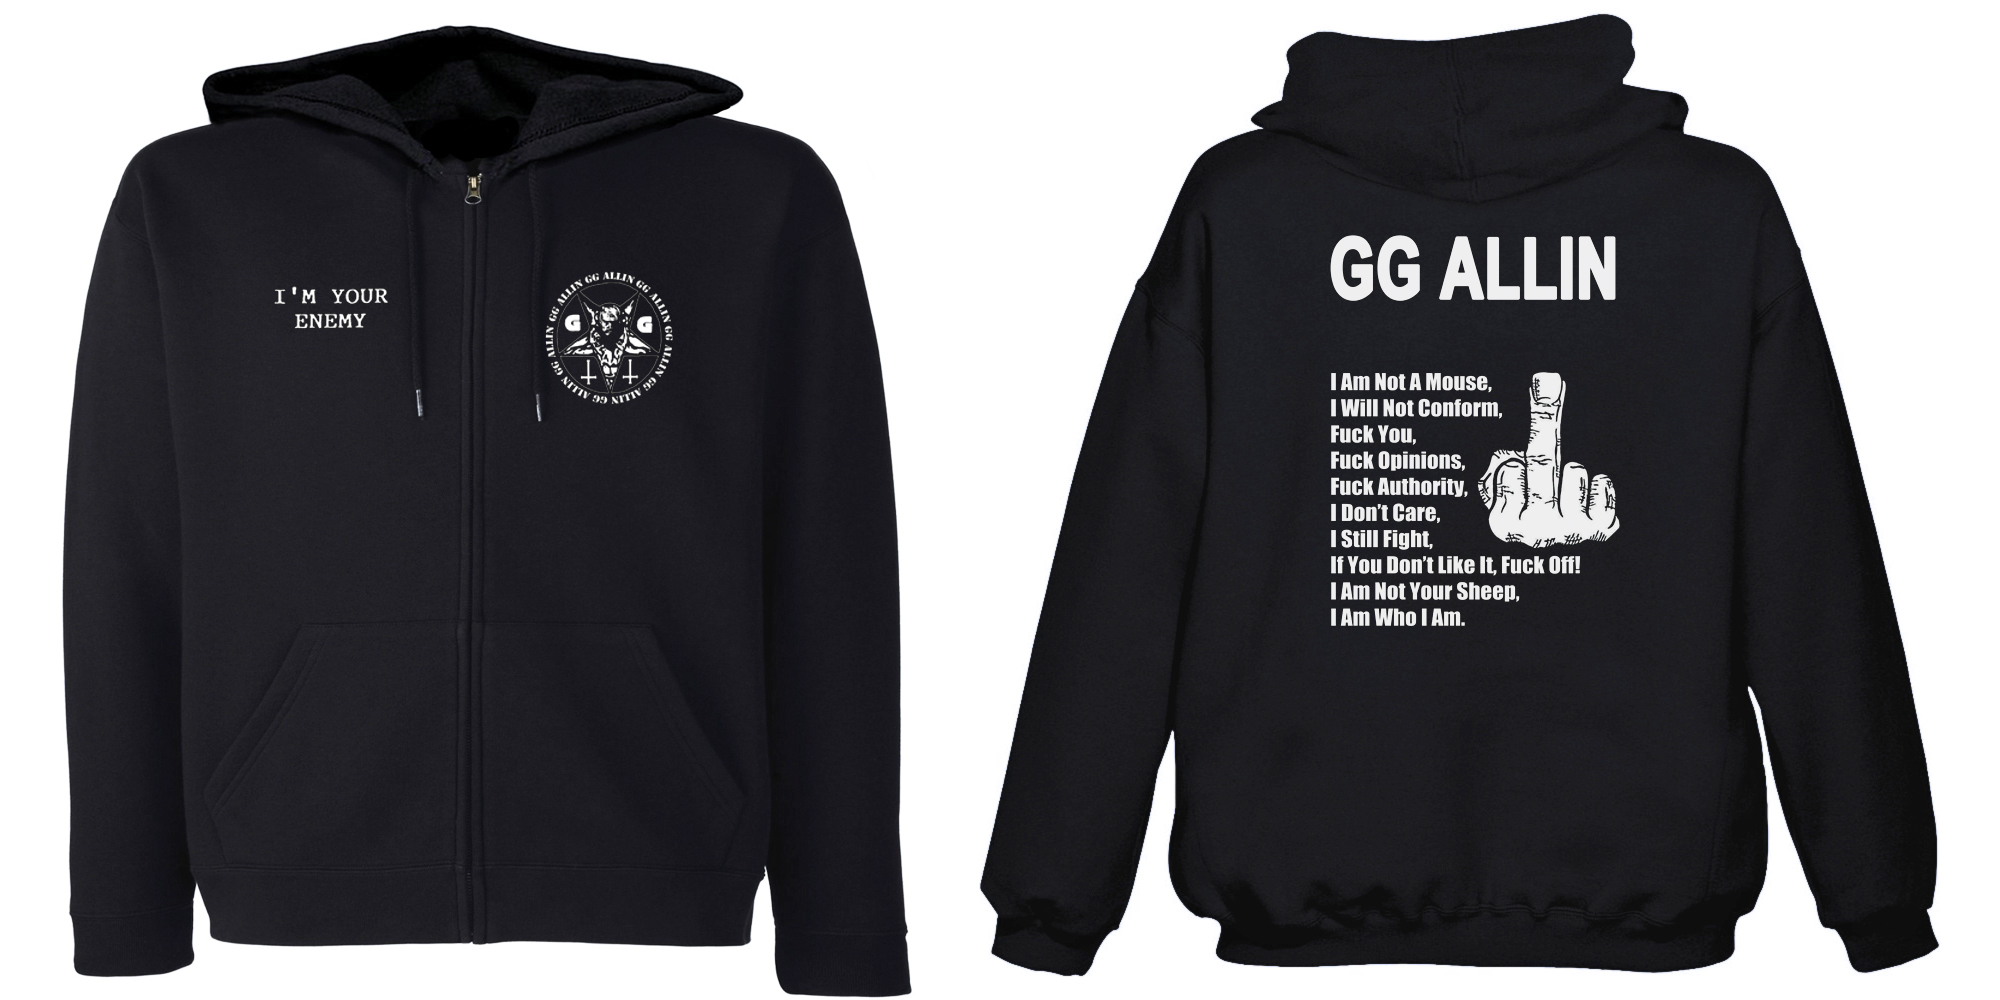 GG Allin - I'm Your Enemy  (Hooded Zipper)